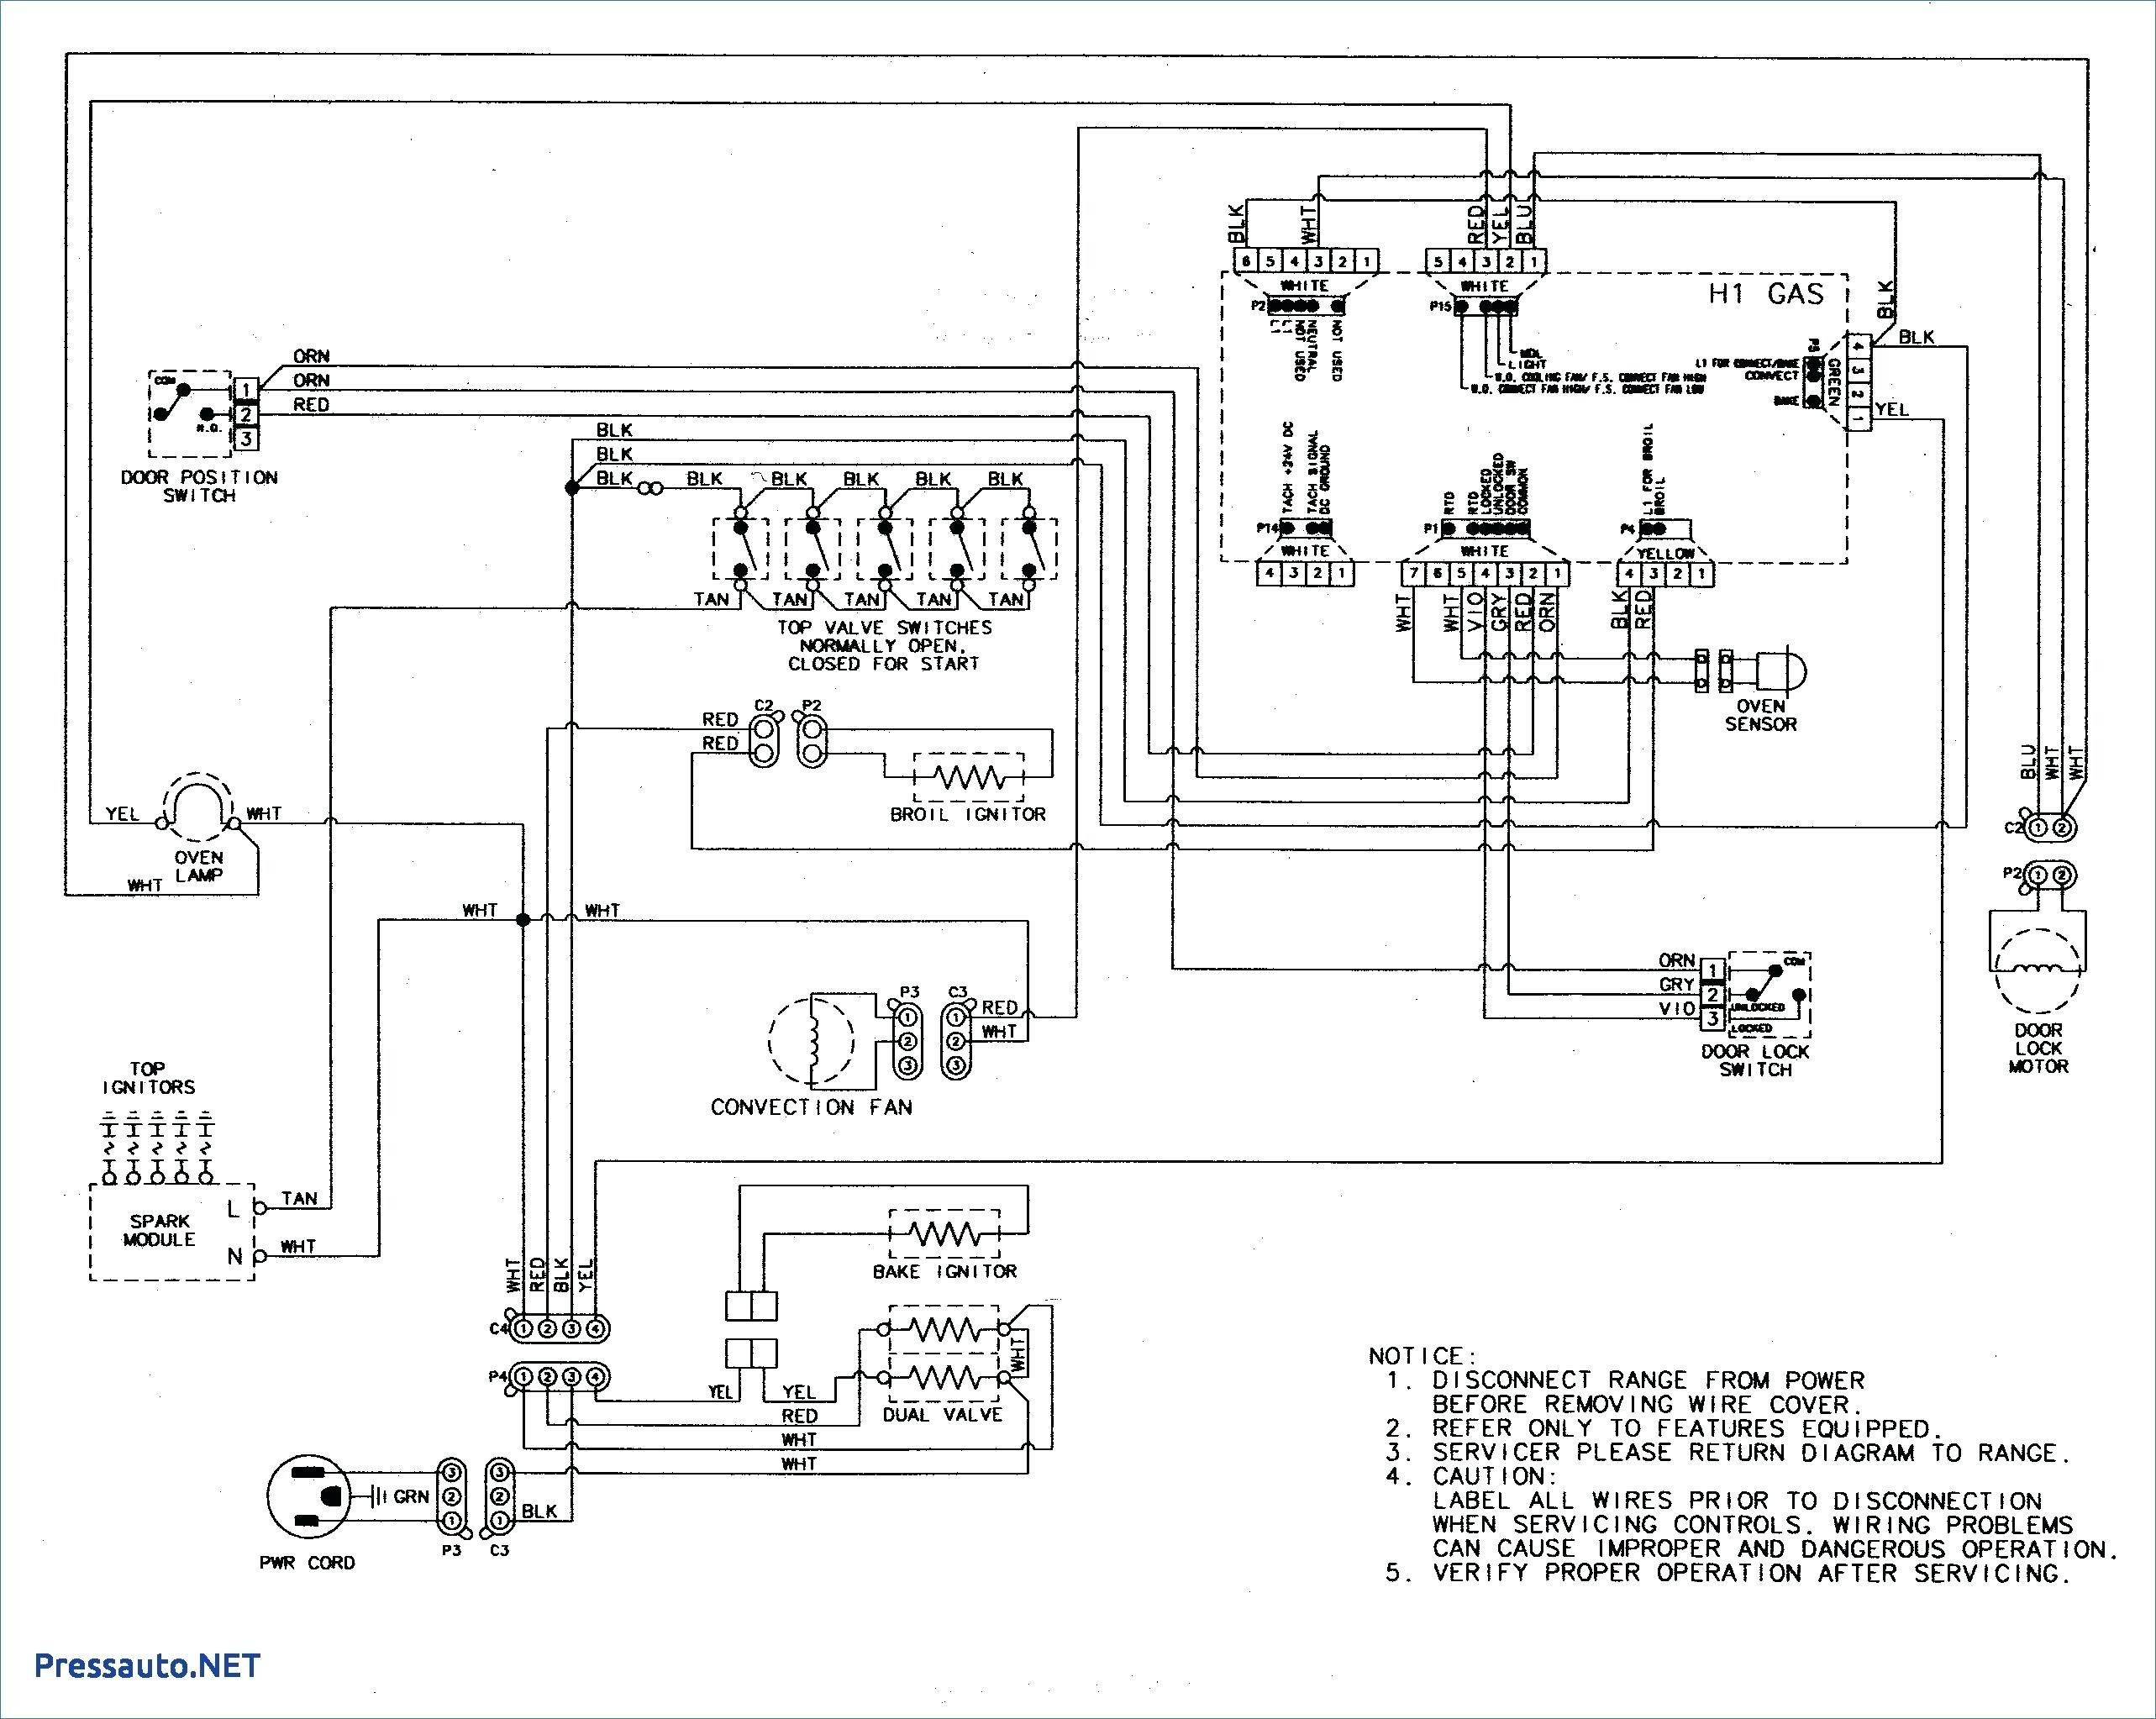 [DIAGRAM] 2007 Saab 9 3 Aero Wiring Diagram FULL Version